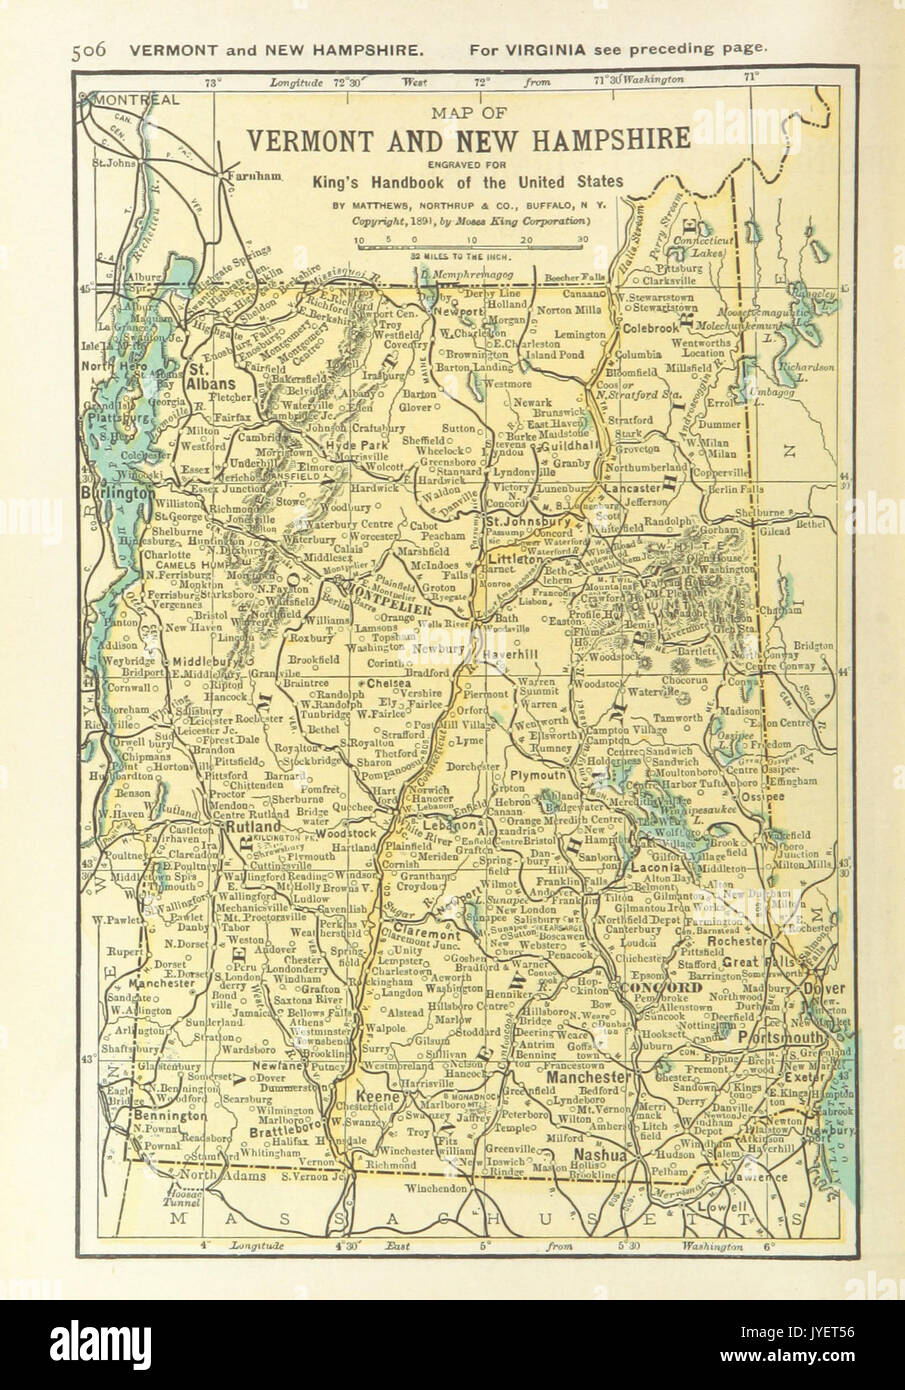 Vermont New Hampshire Map Stock Photos Vermont New Hampshire Map - New hampshire in us map